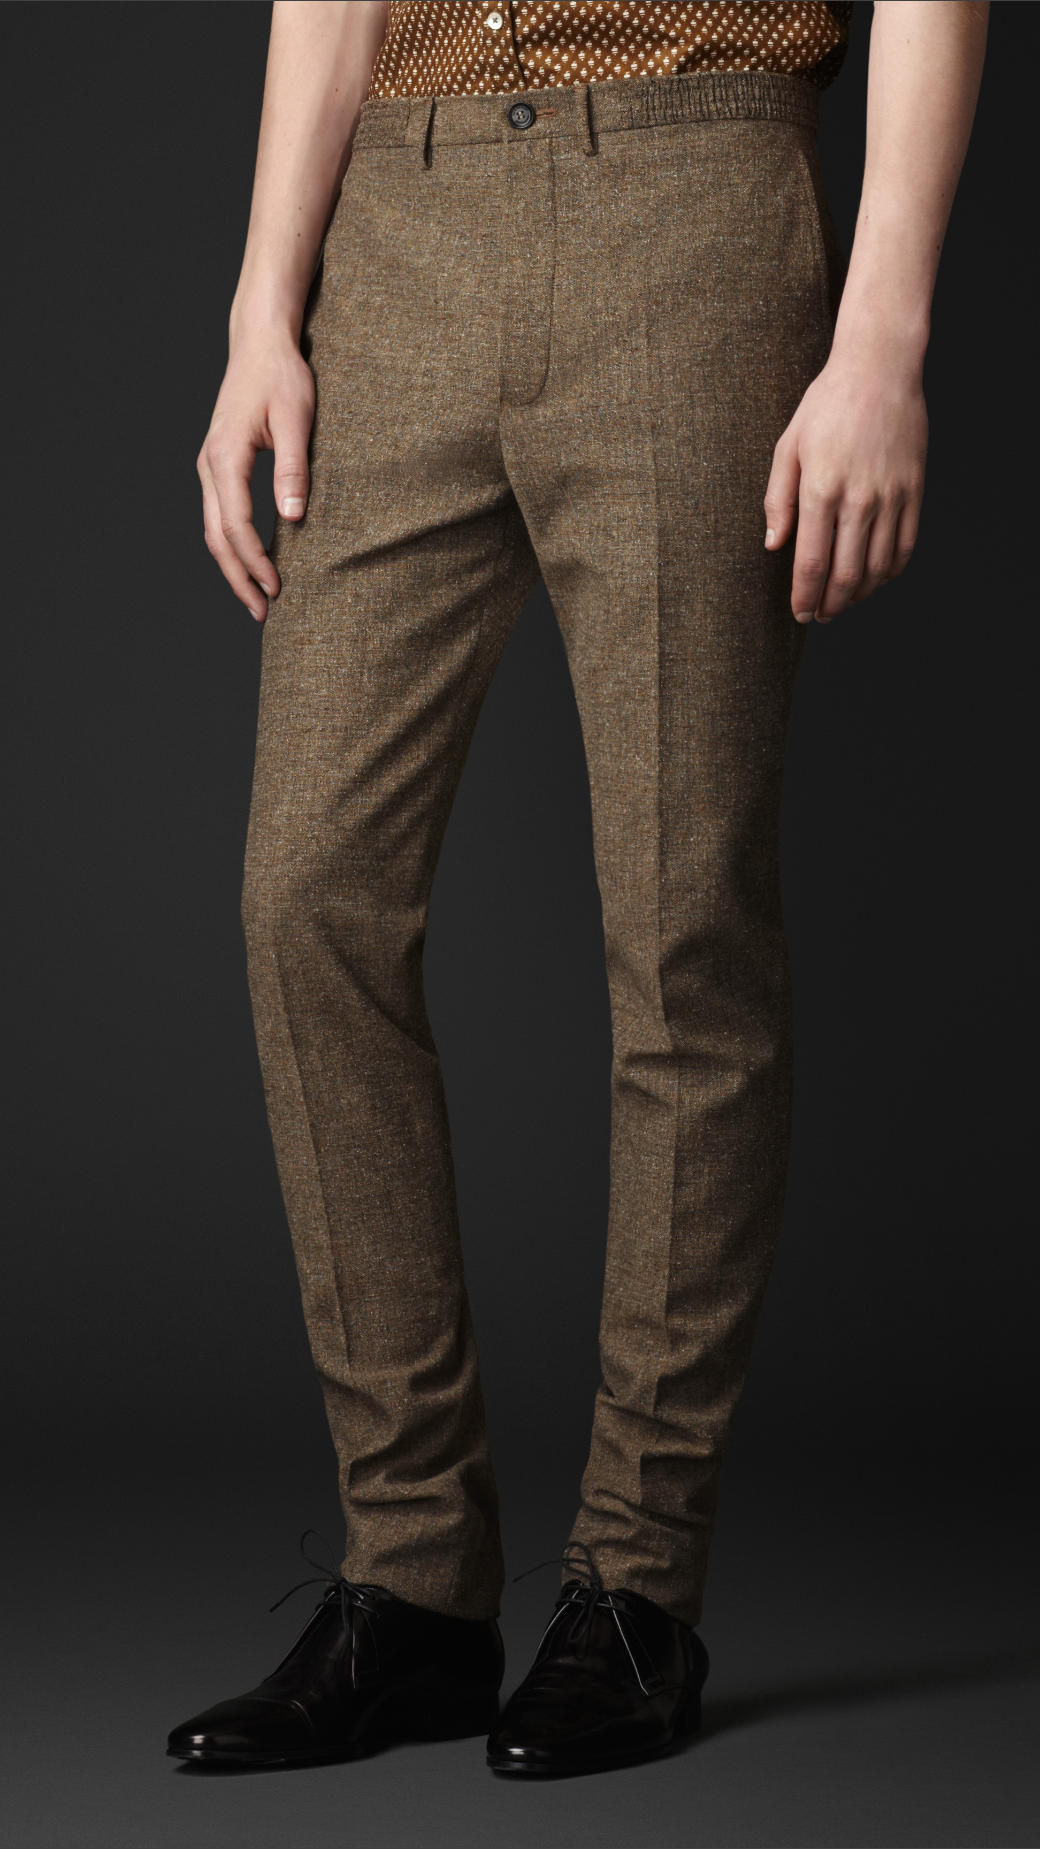 Burberry Prorsum Slim Fit Tweed Trousers In Camel Brown